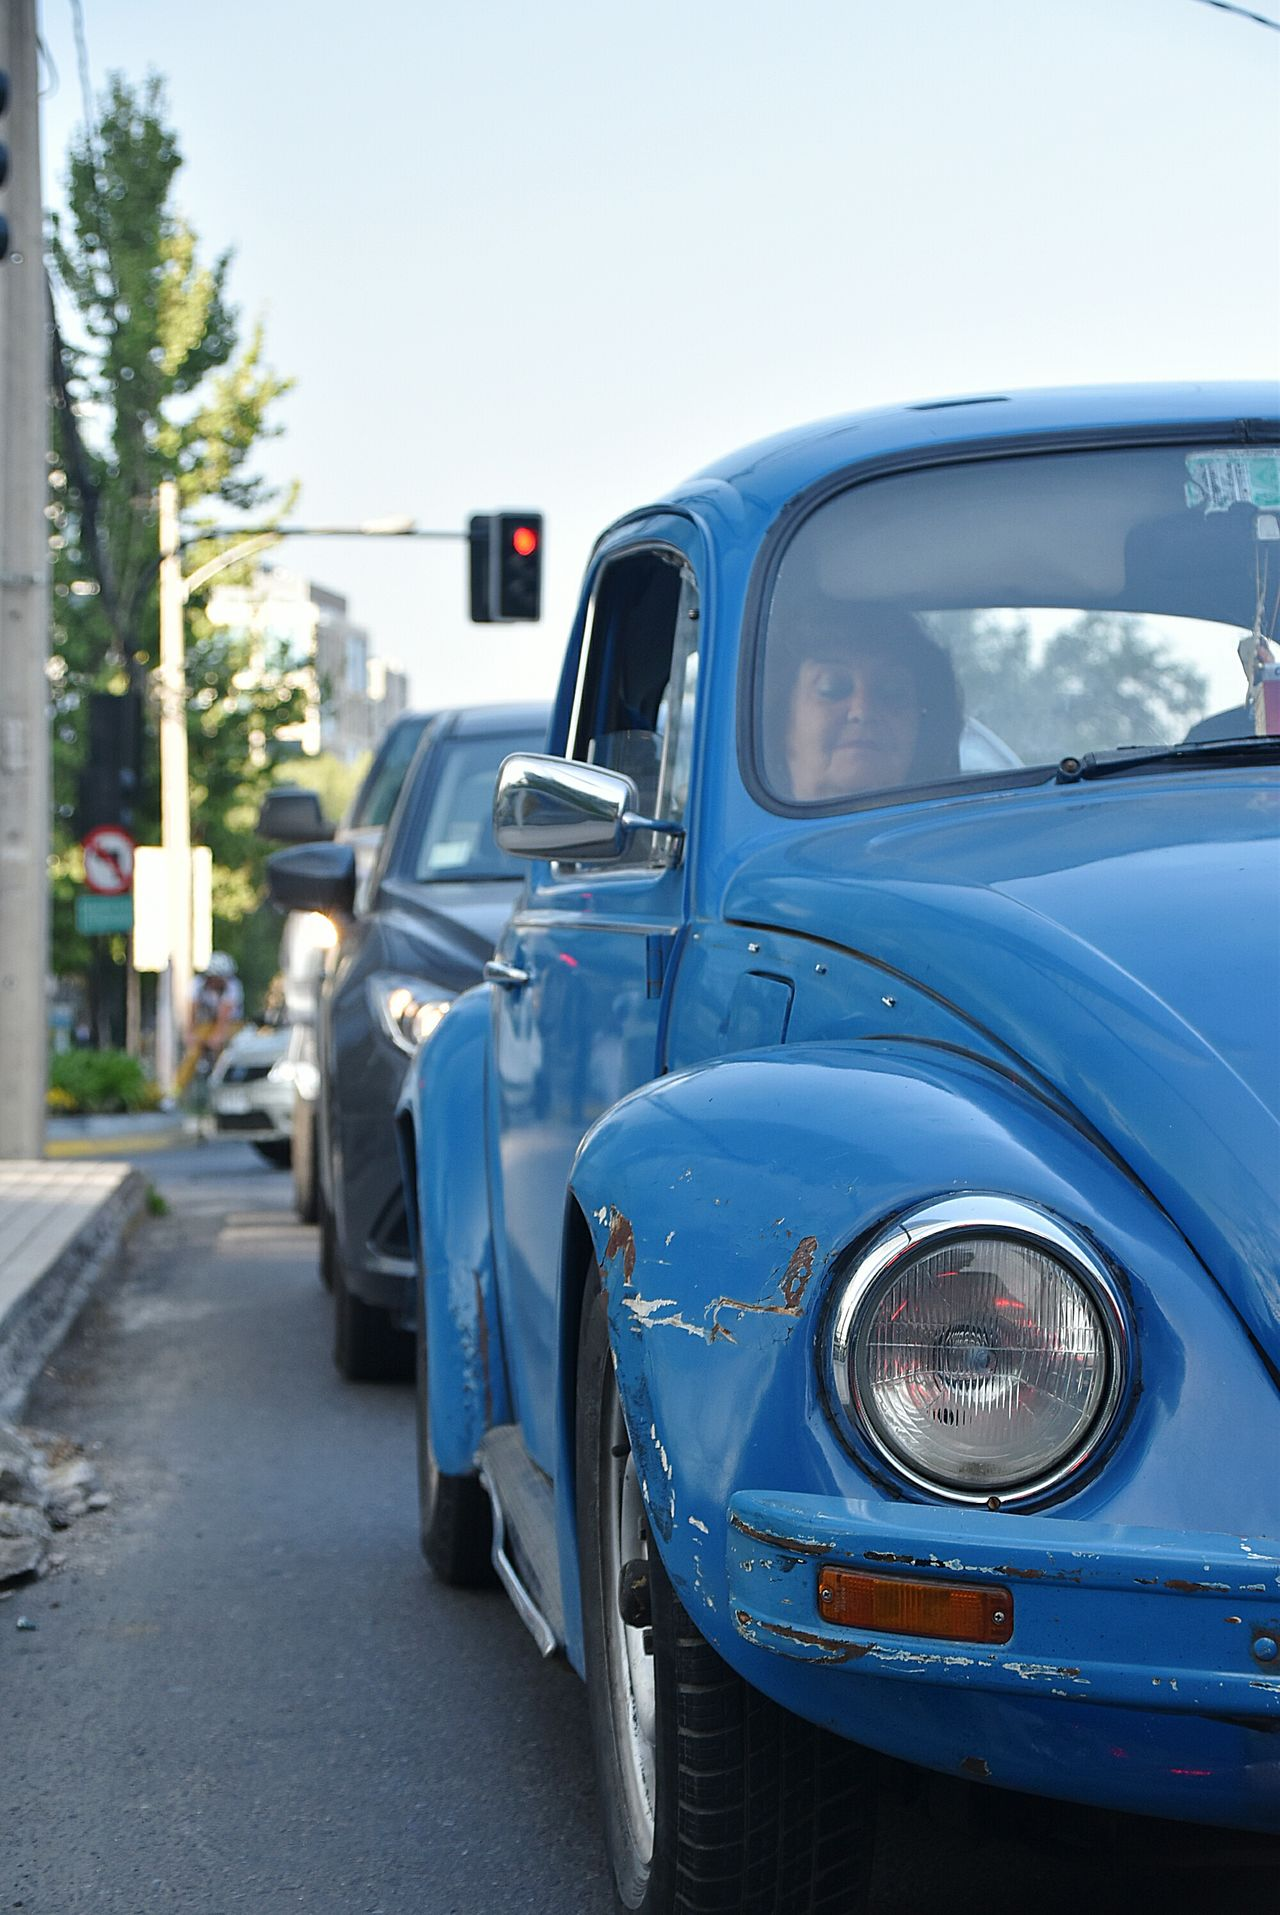 Old-fashioned Transportation Vwbeetle Vwlove VW Beetle Vwbug Vintagecar Close-up NikonD5500 TheWeekOnEyeEM Urbanphotography Streetphotography 200mm Chile Nikon City Life City Street Mode Of Transport Traffic Traffic Jam Street People Person Car Blue Beetle